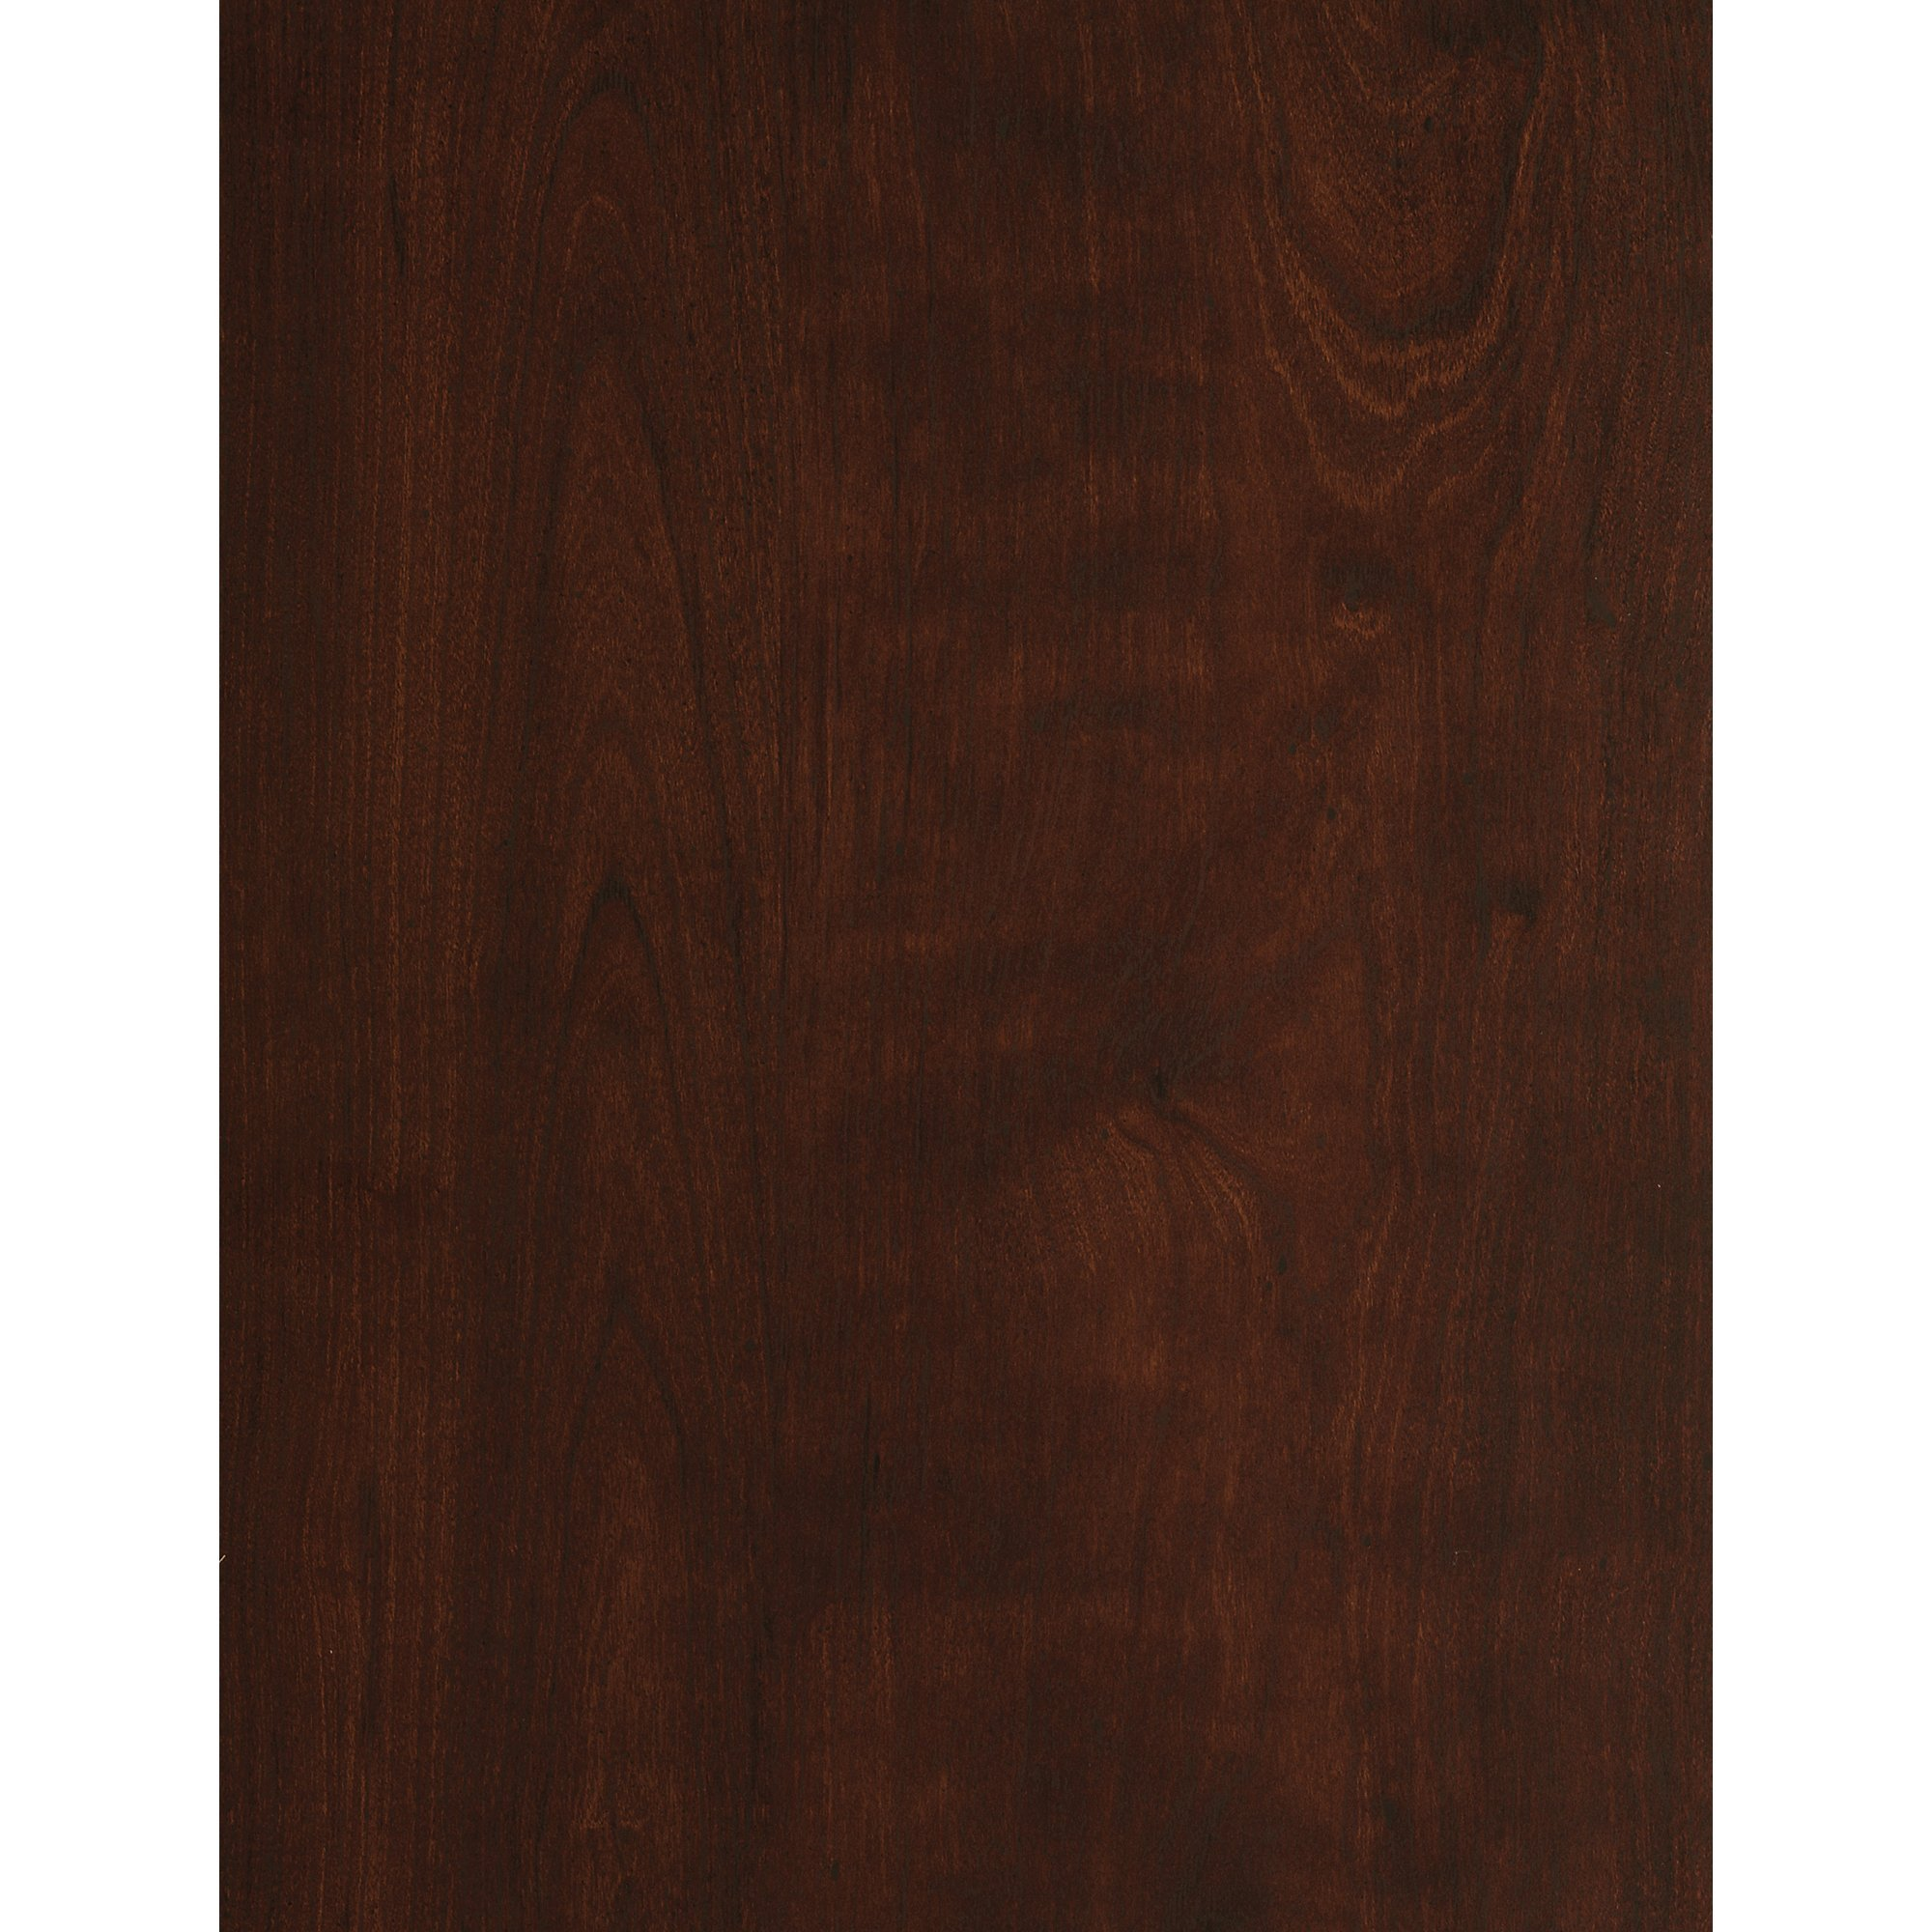 Bush Furniture Buena Vista Small Storage Cabinet with Doors in Madison Cherry by Bush Furniture (Image #5)